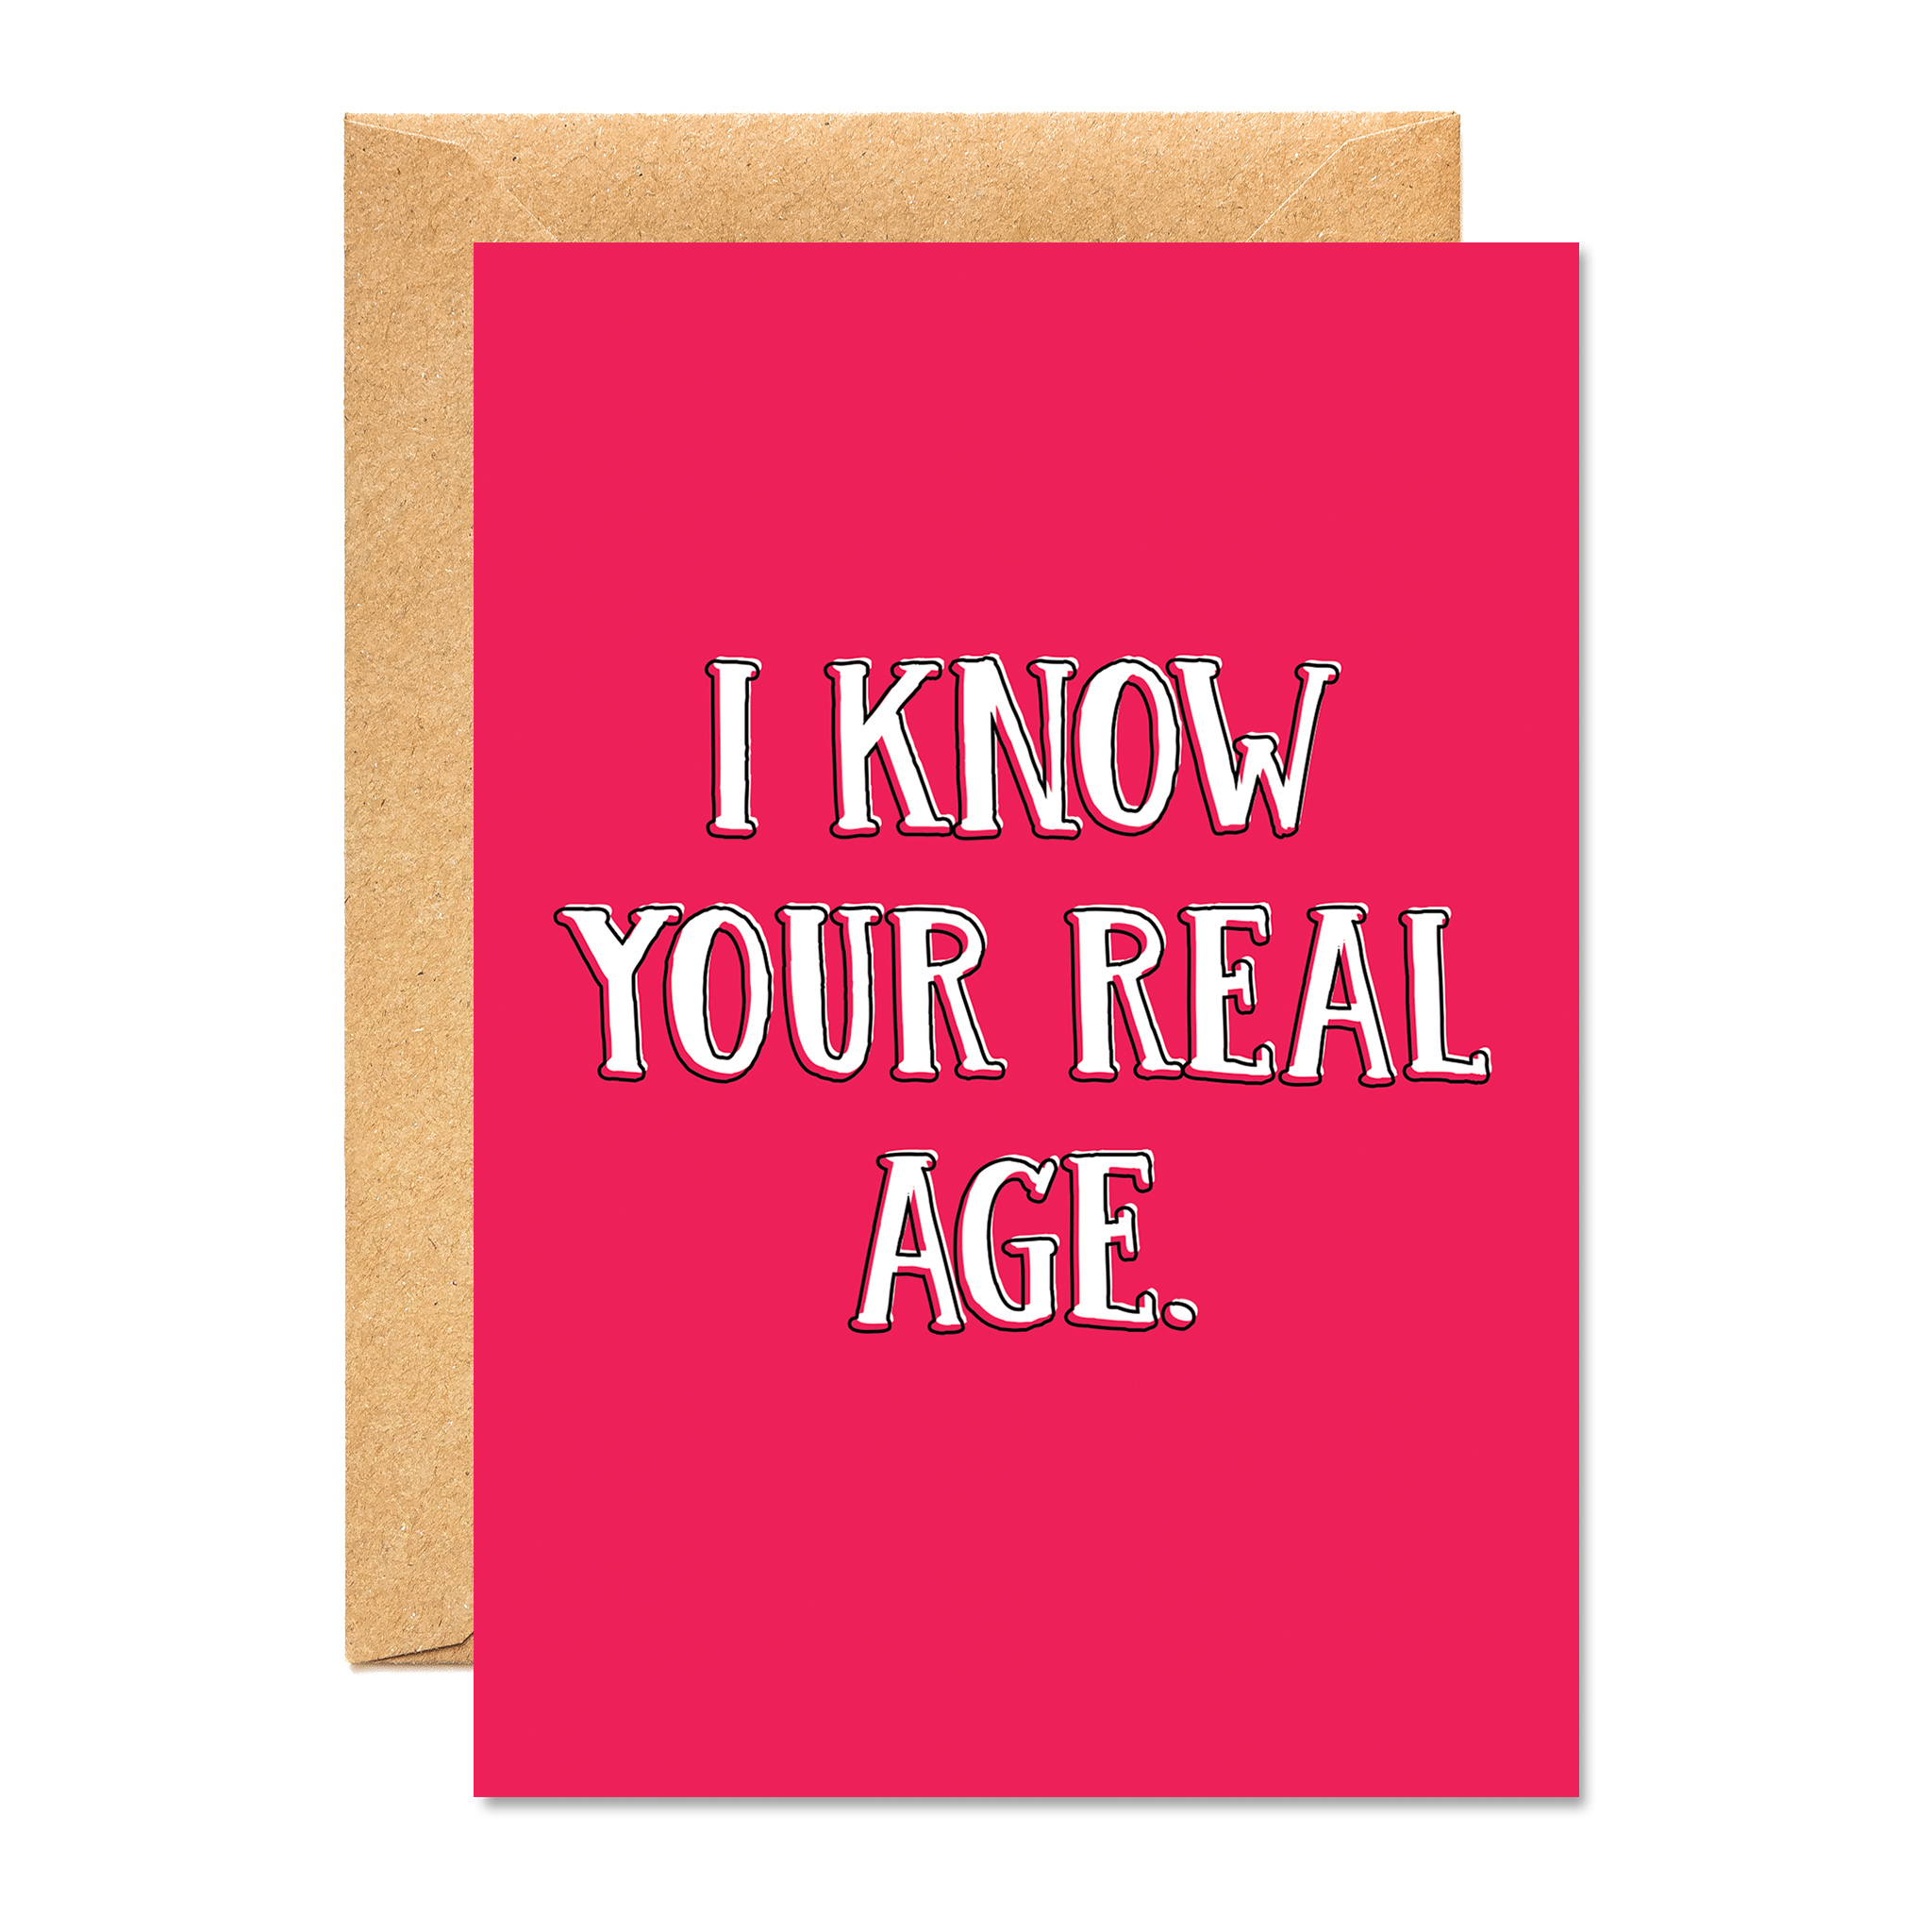 I KNOW YOUR REAL AGE